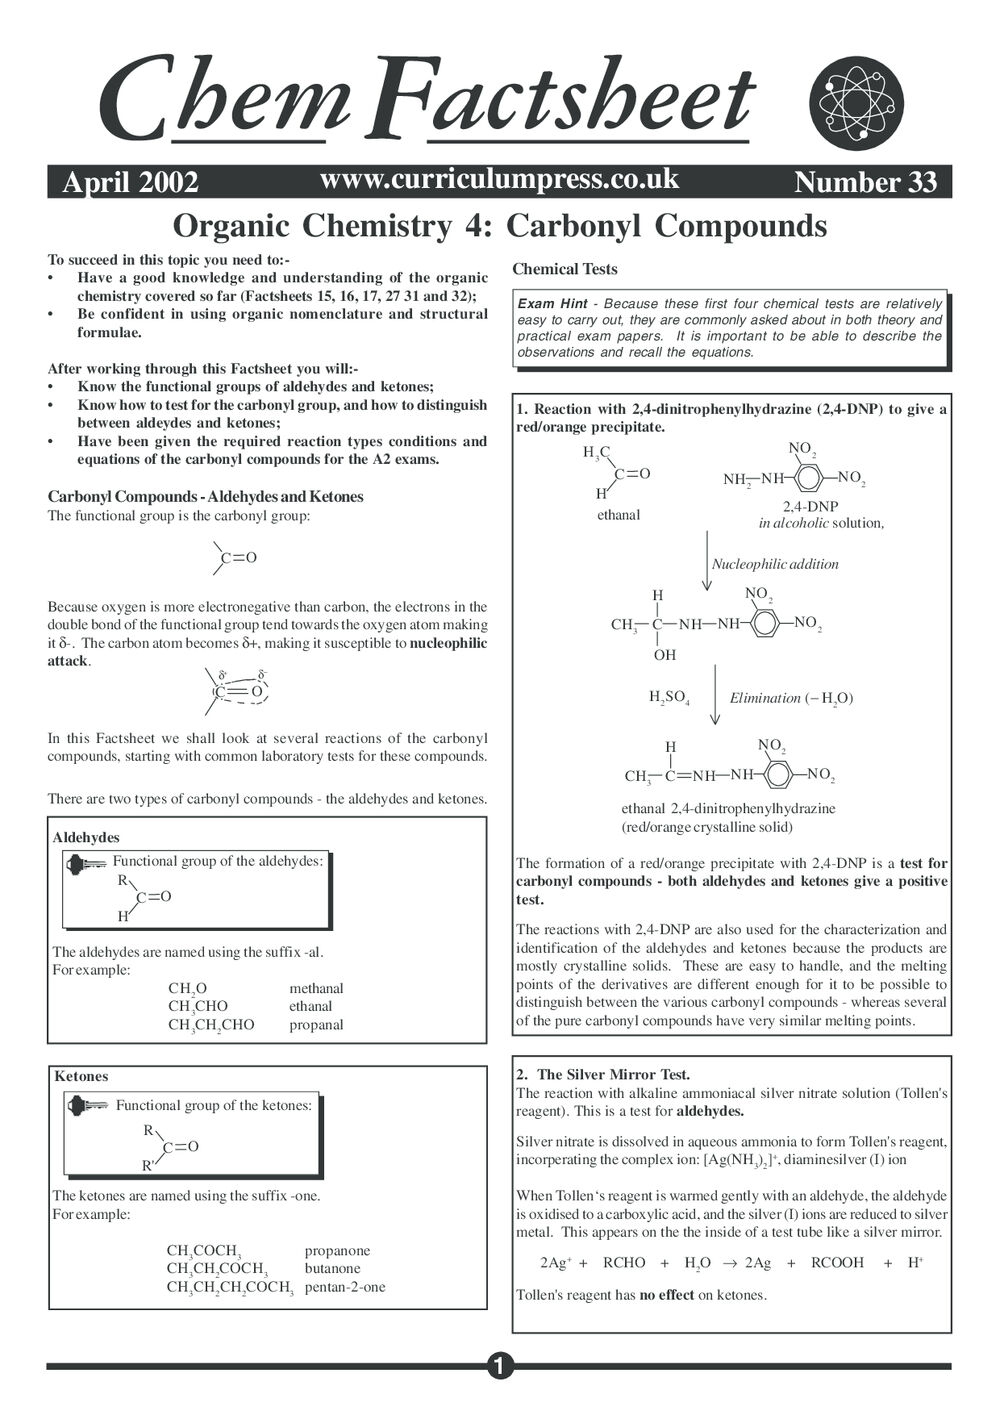 Organic Chemistry 4 – Carbonyl Compounds - Curriculum Press